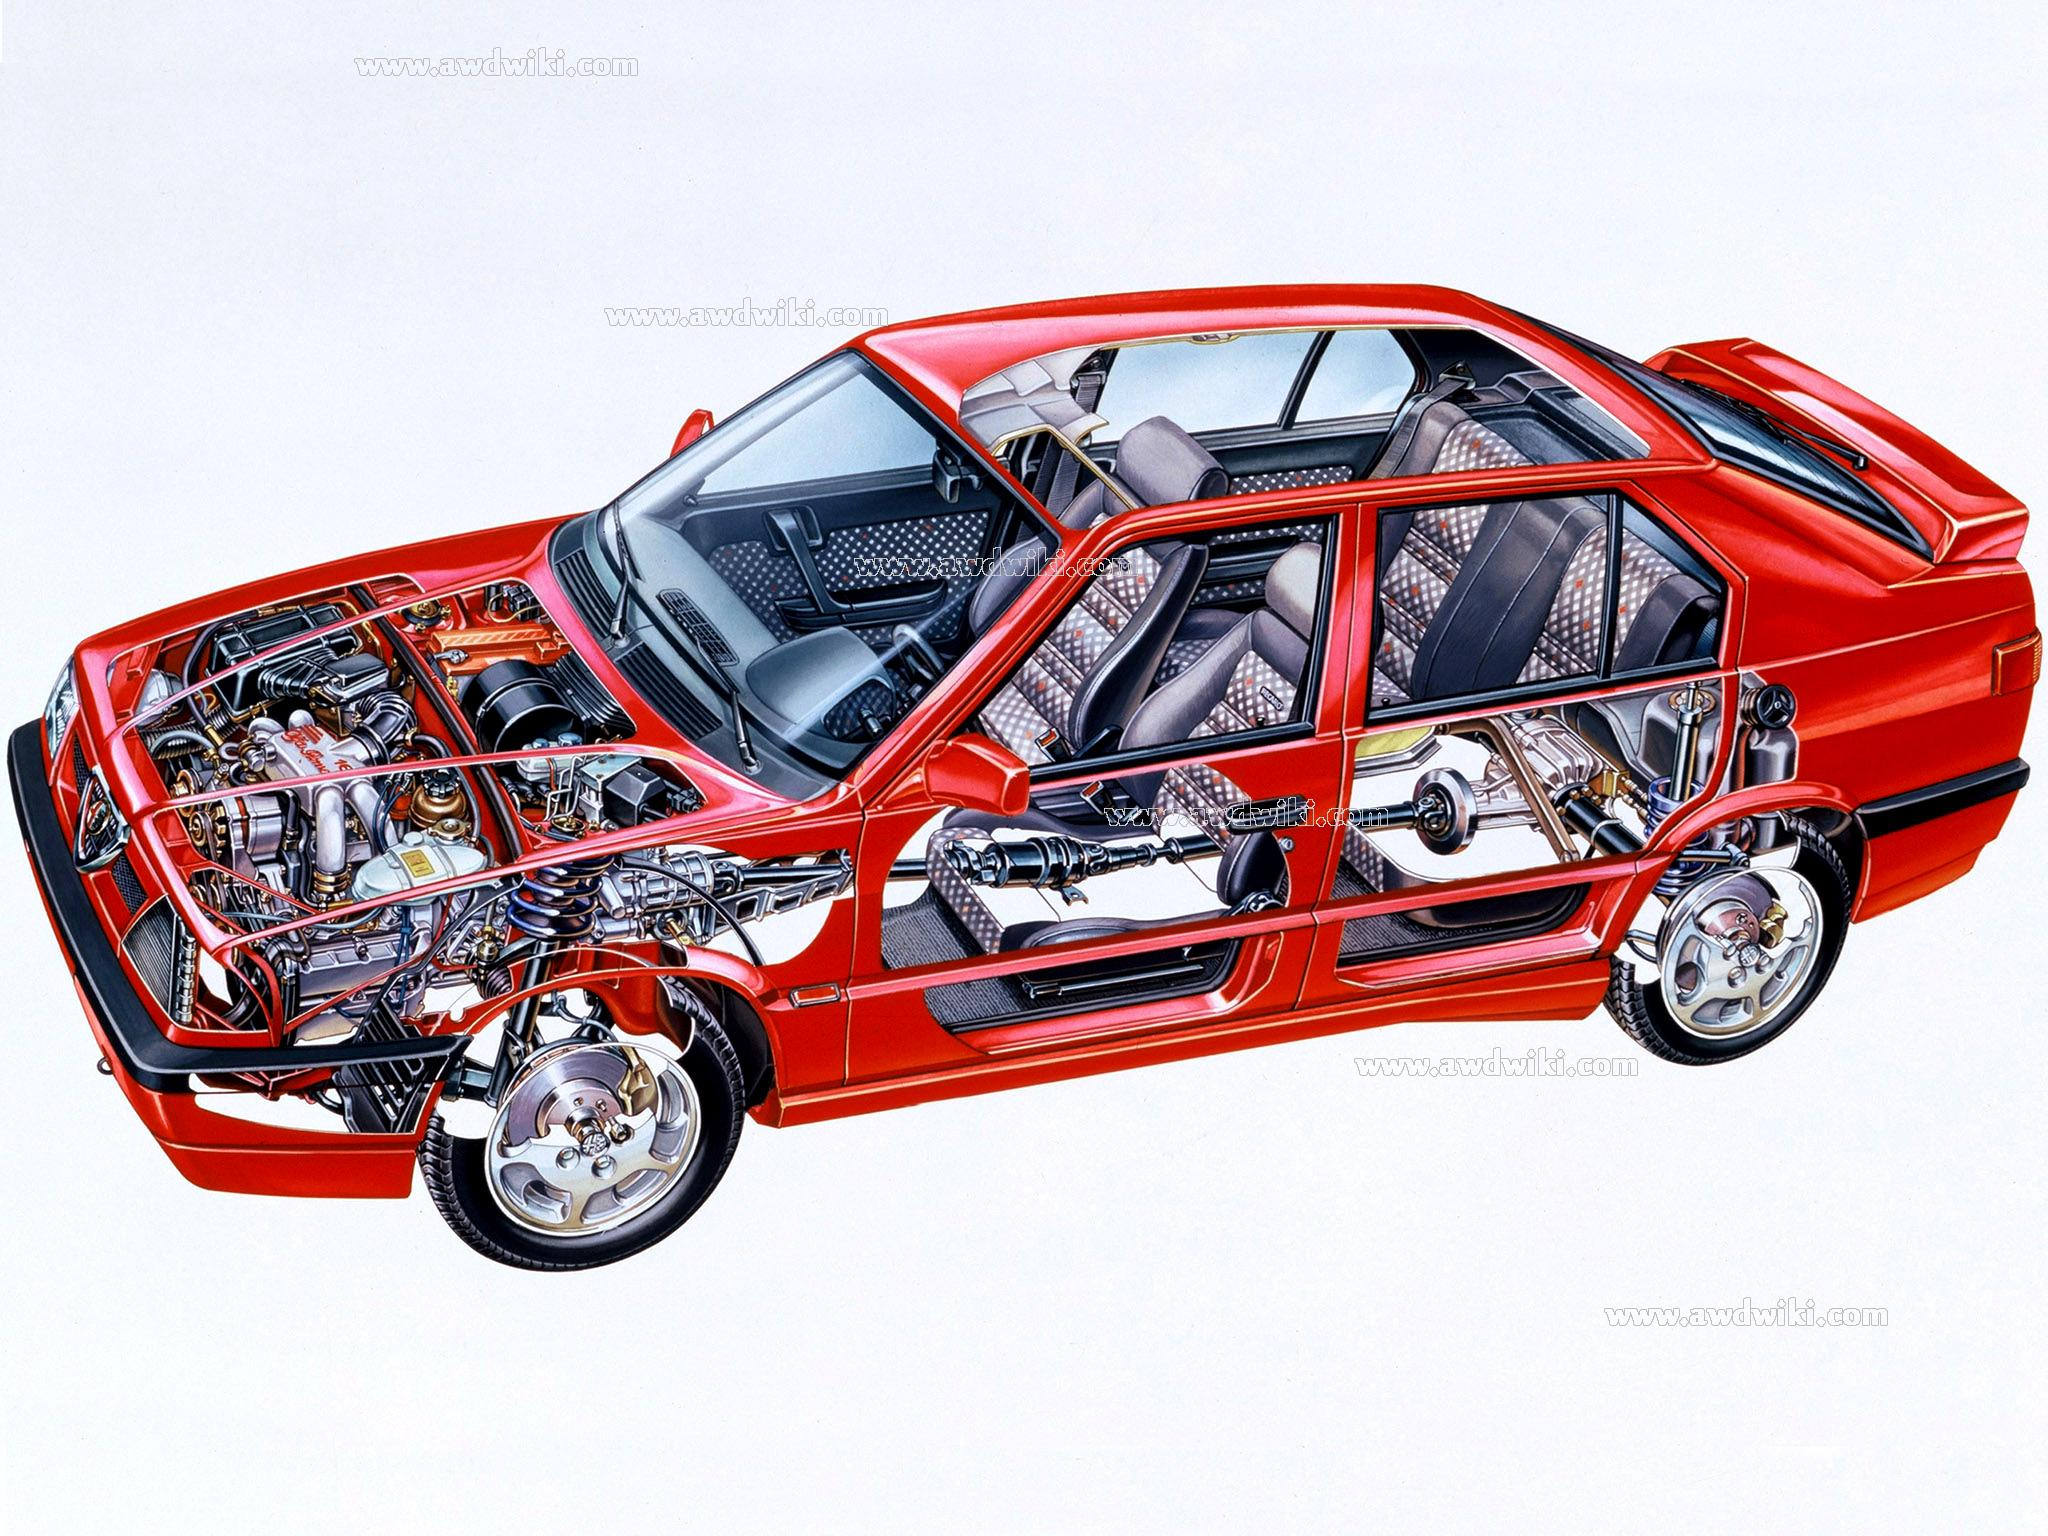 Alfa-Romeo 33 photo 11